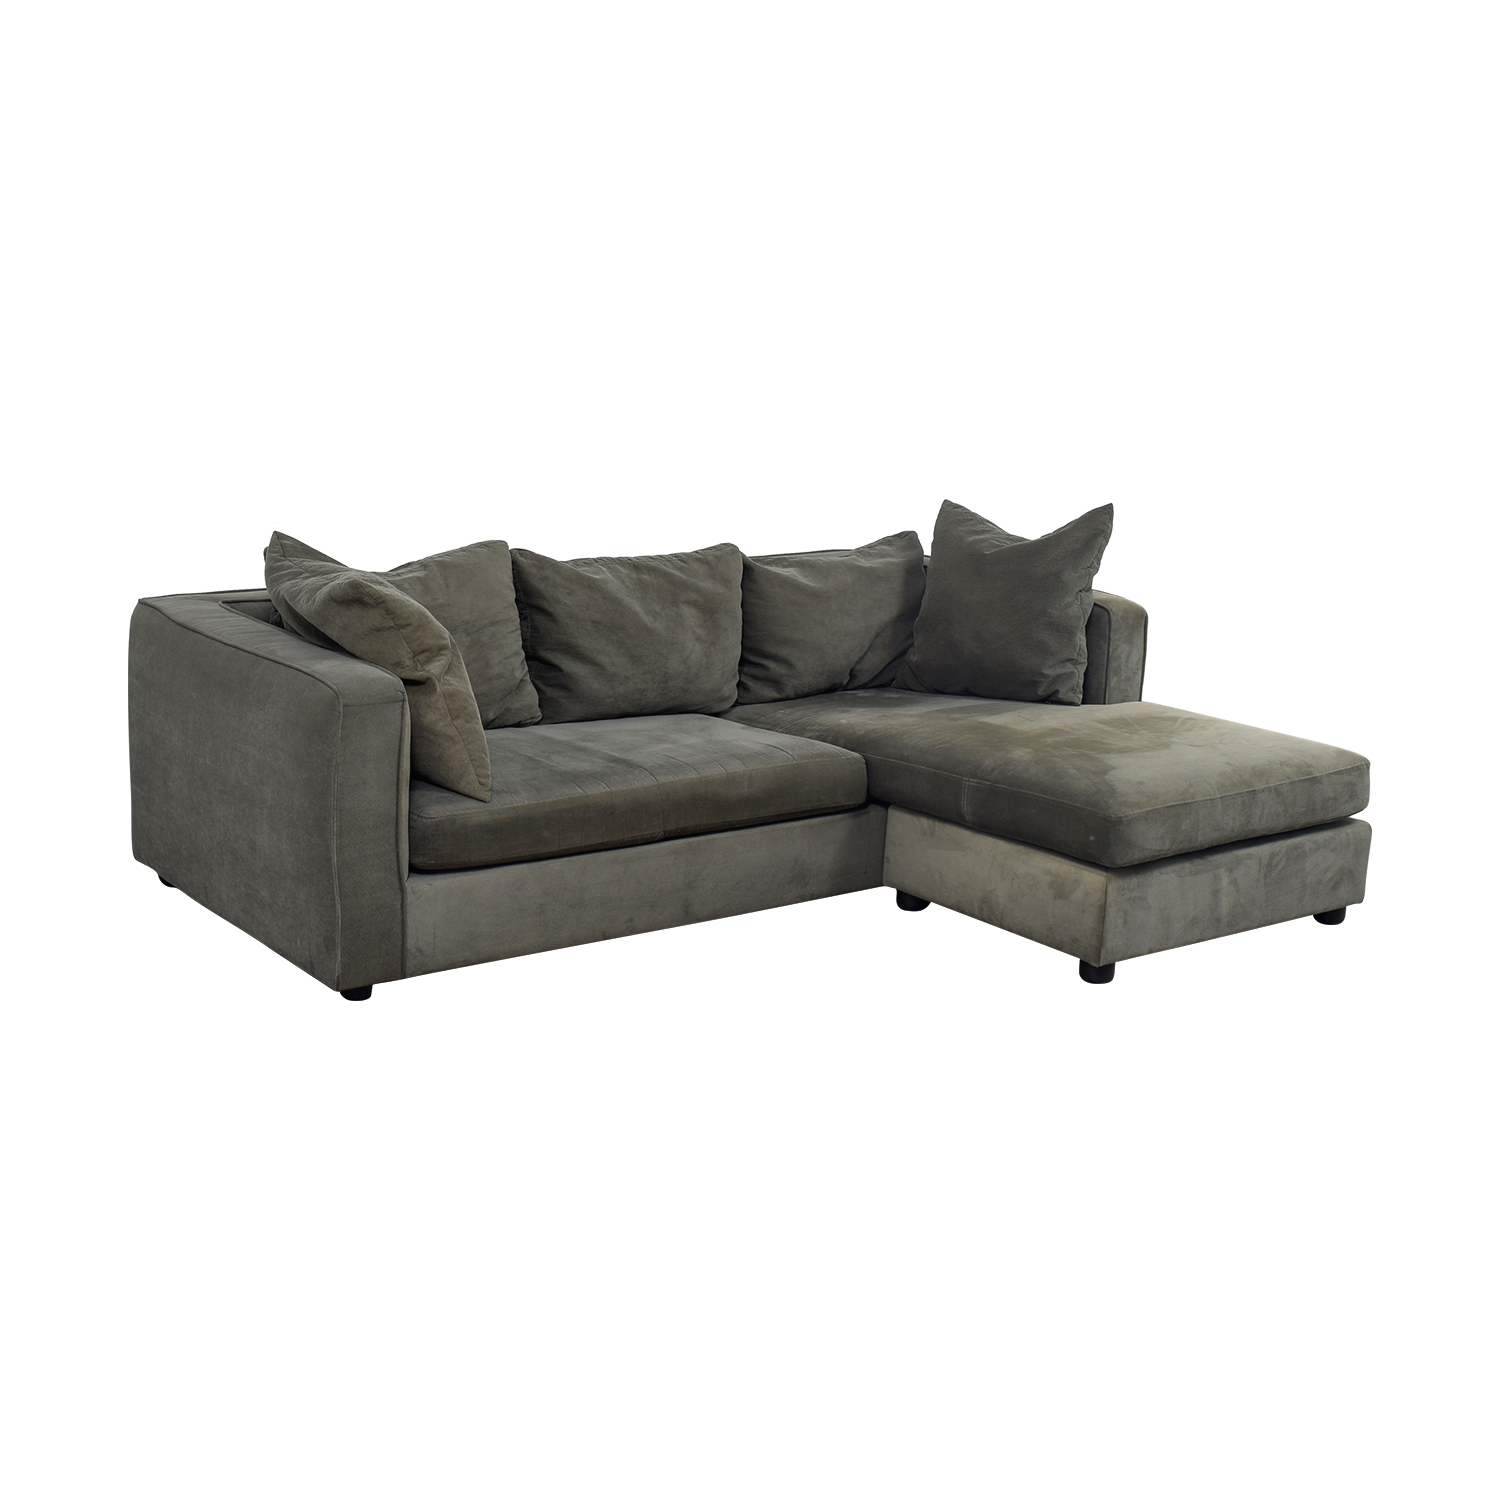 ABC Carpet & Home ABC Carpet & Home Grey L- Shaped Couch